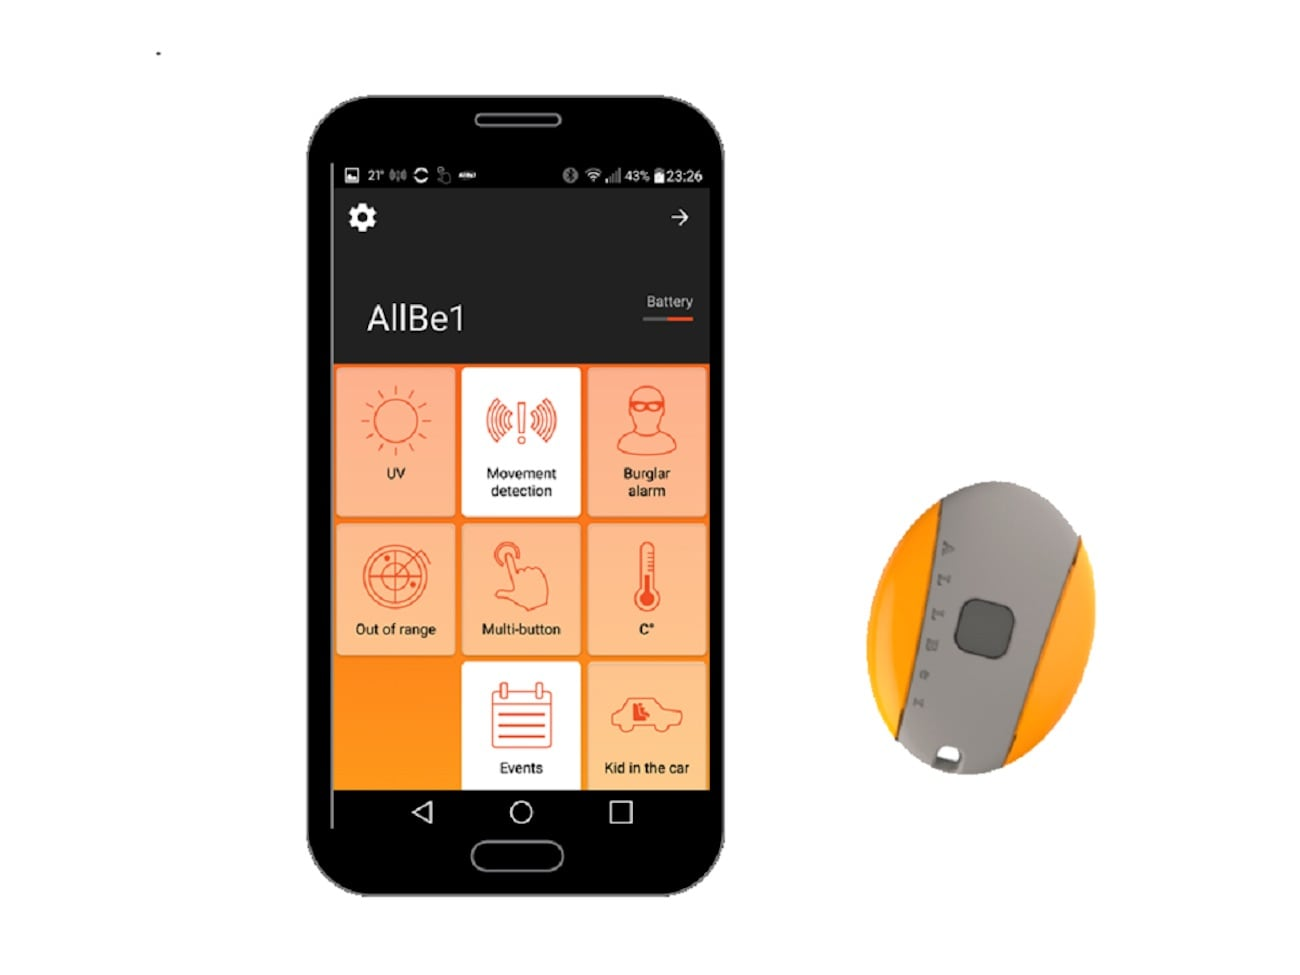 AllBe1 Plus All-In-One Security Device